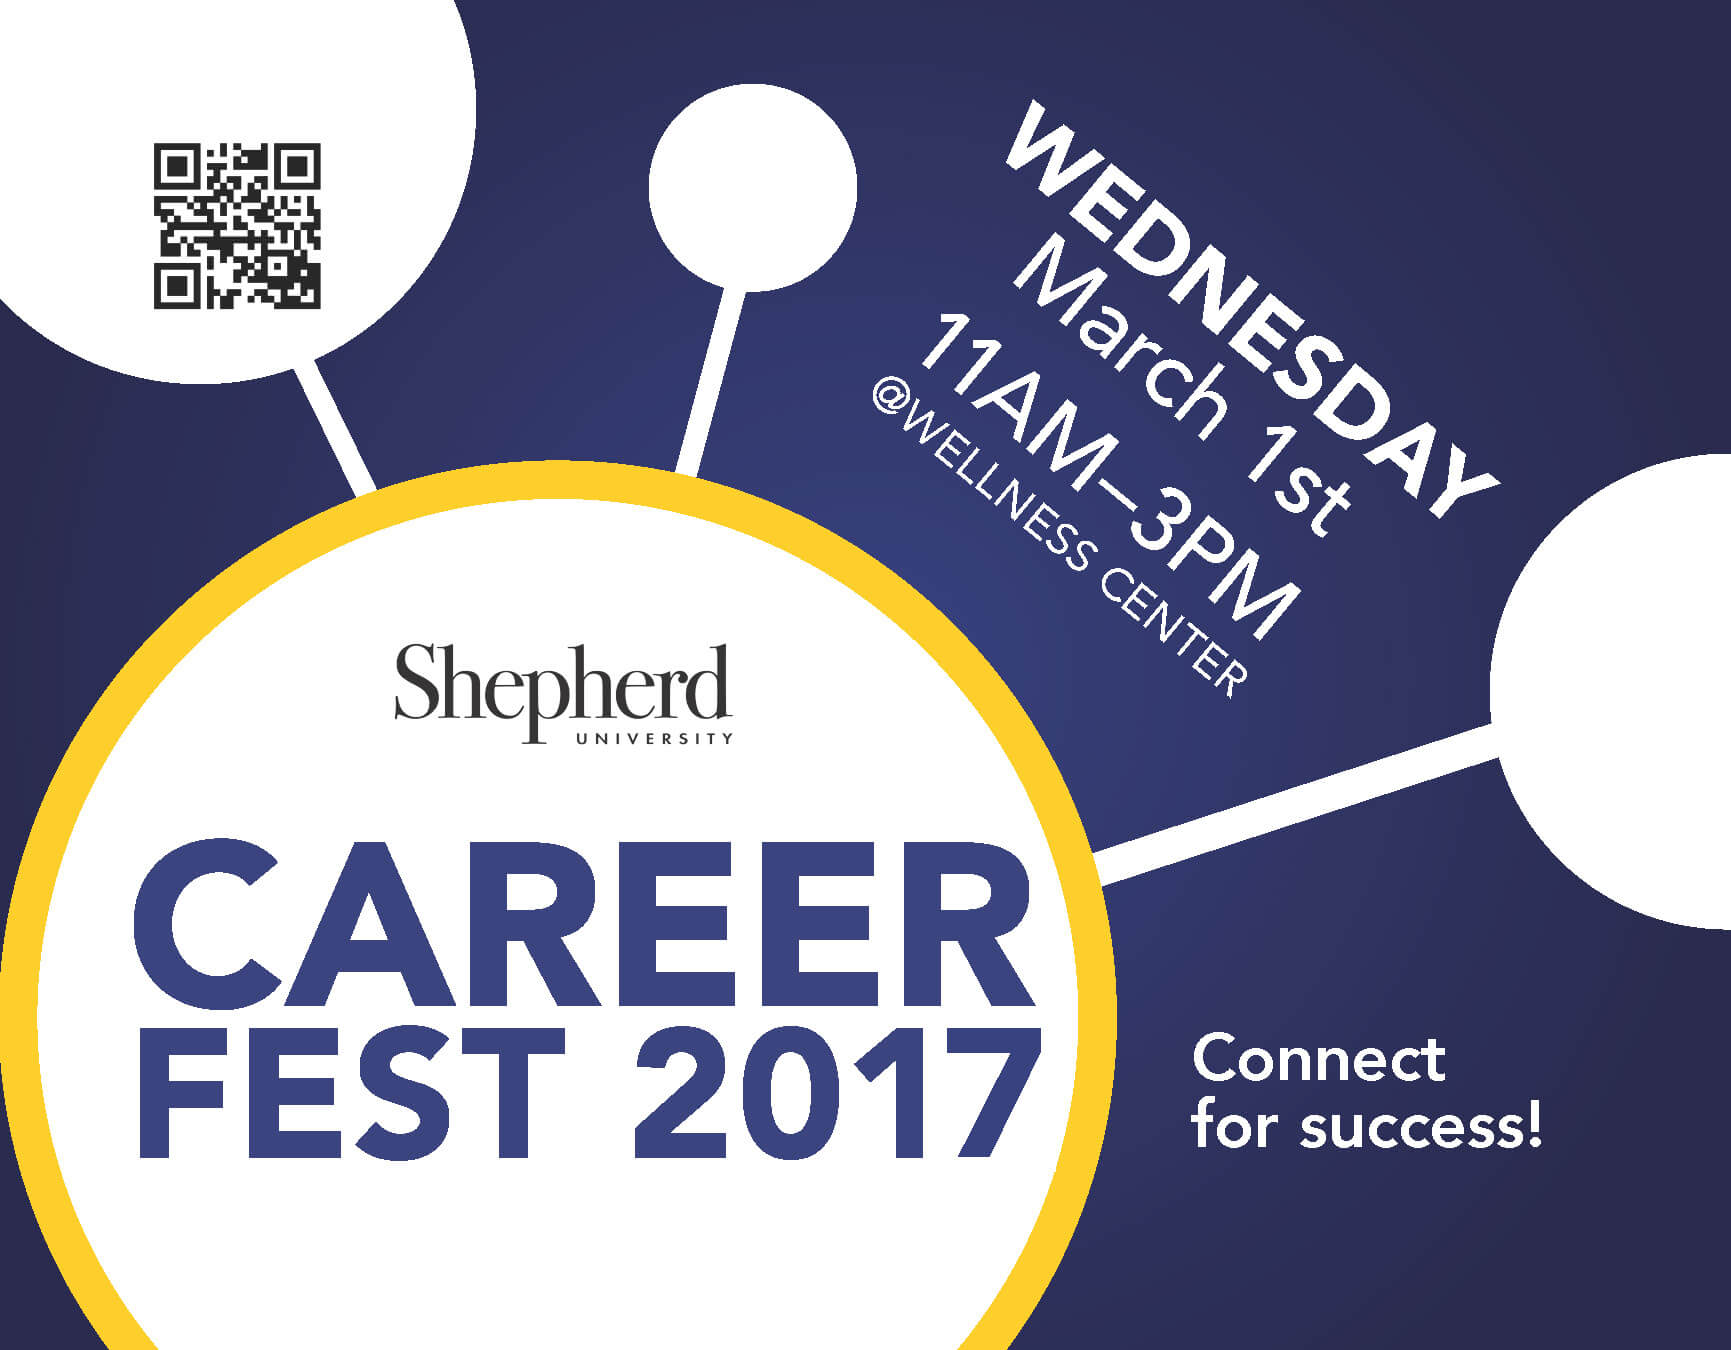 shepherd university career center career services is part of the advising assistance center located on the ground floor of scarborough library in the learning commons and can assist